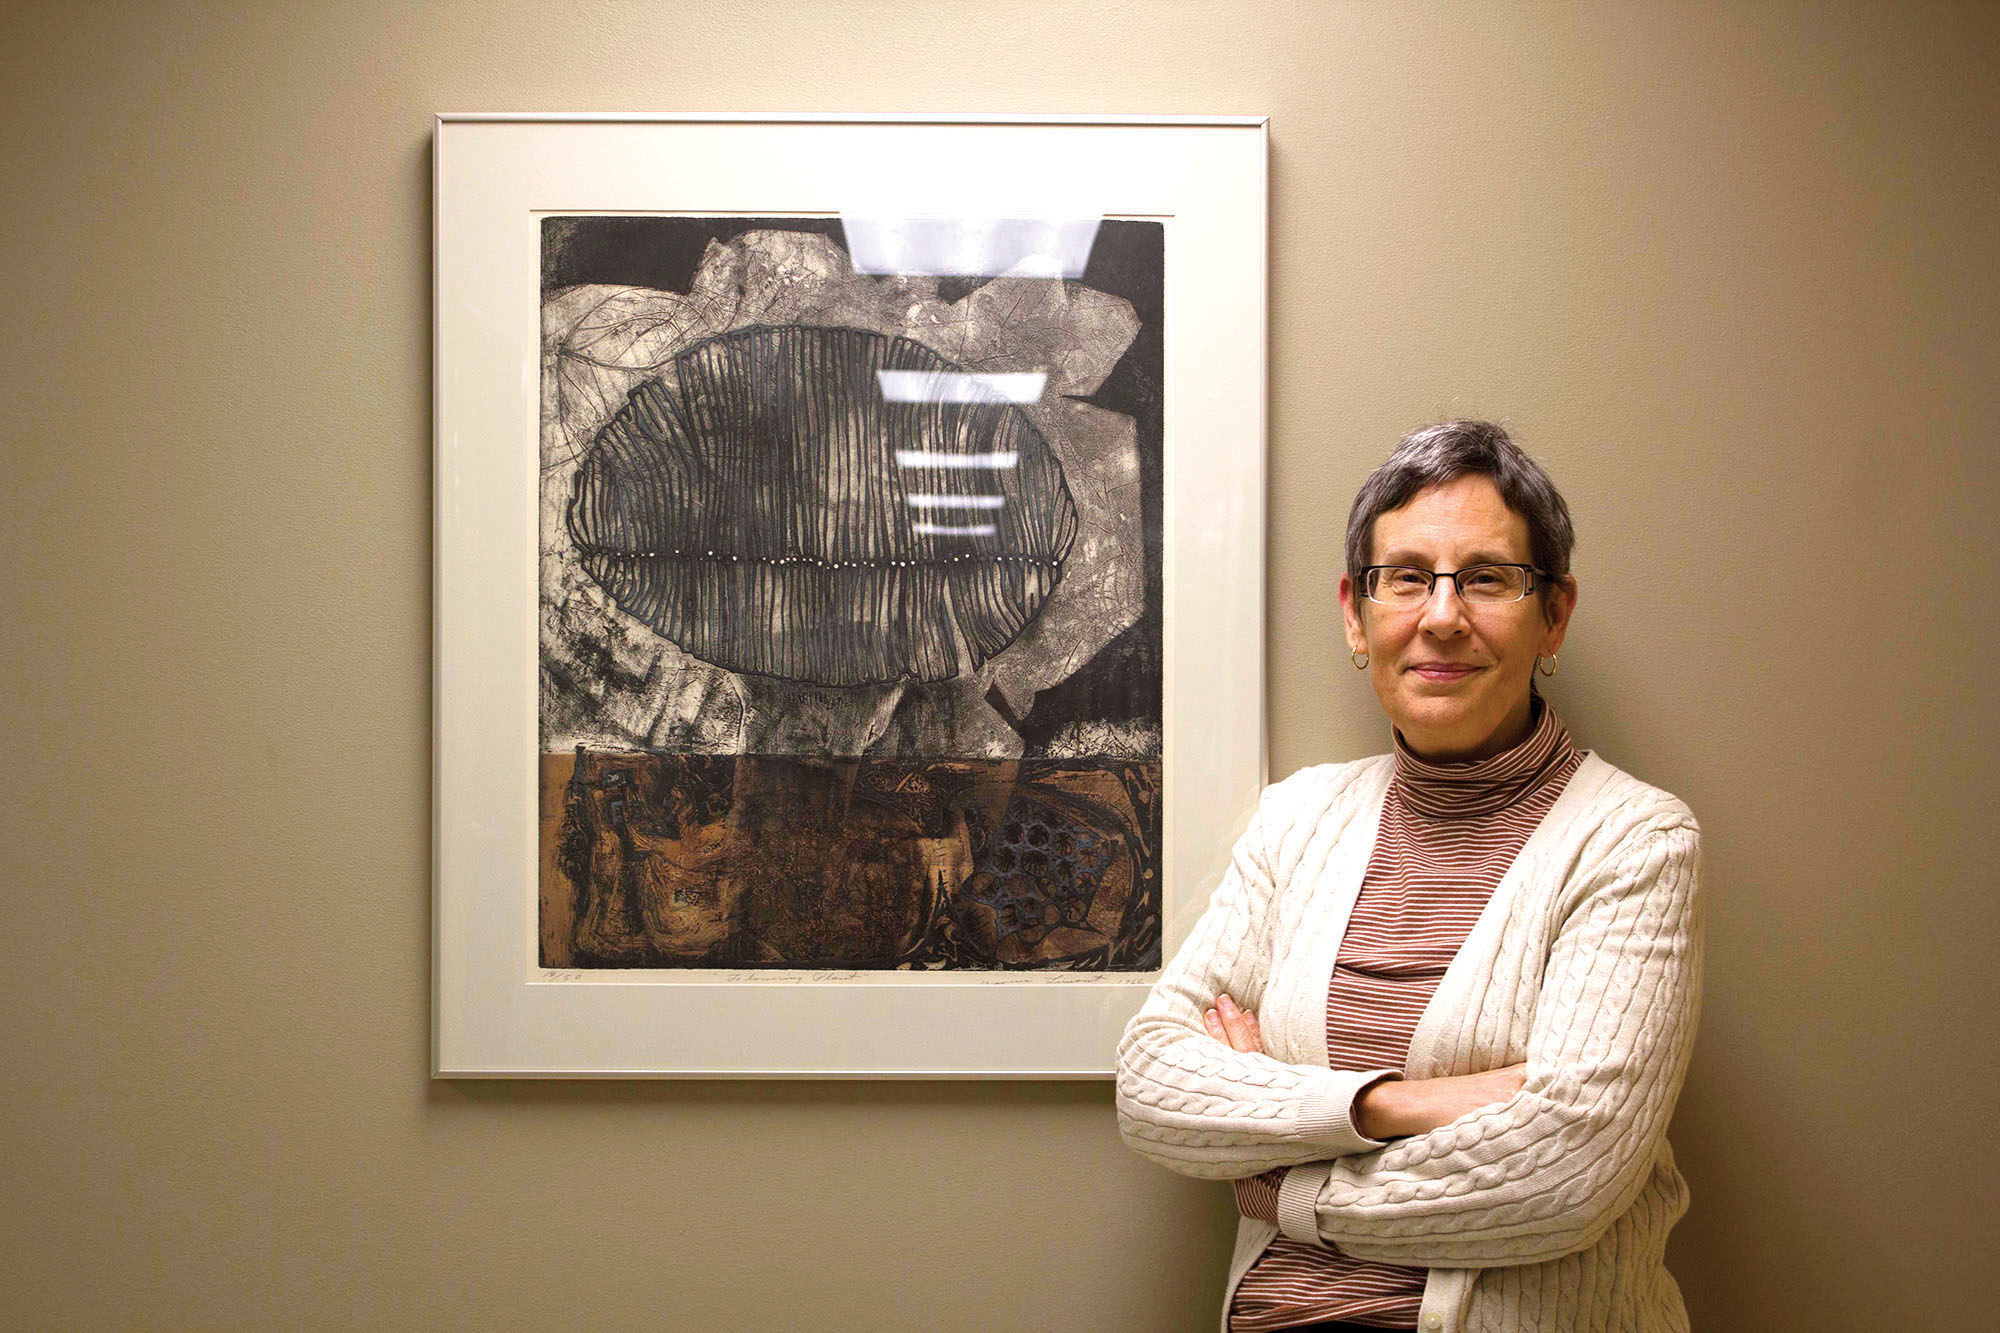 Dr. Jo-Ann Brant stands next to a painting